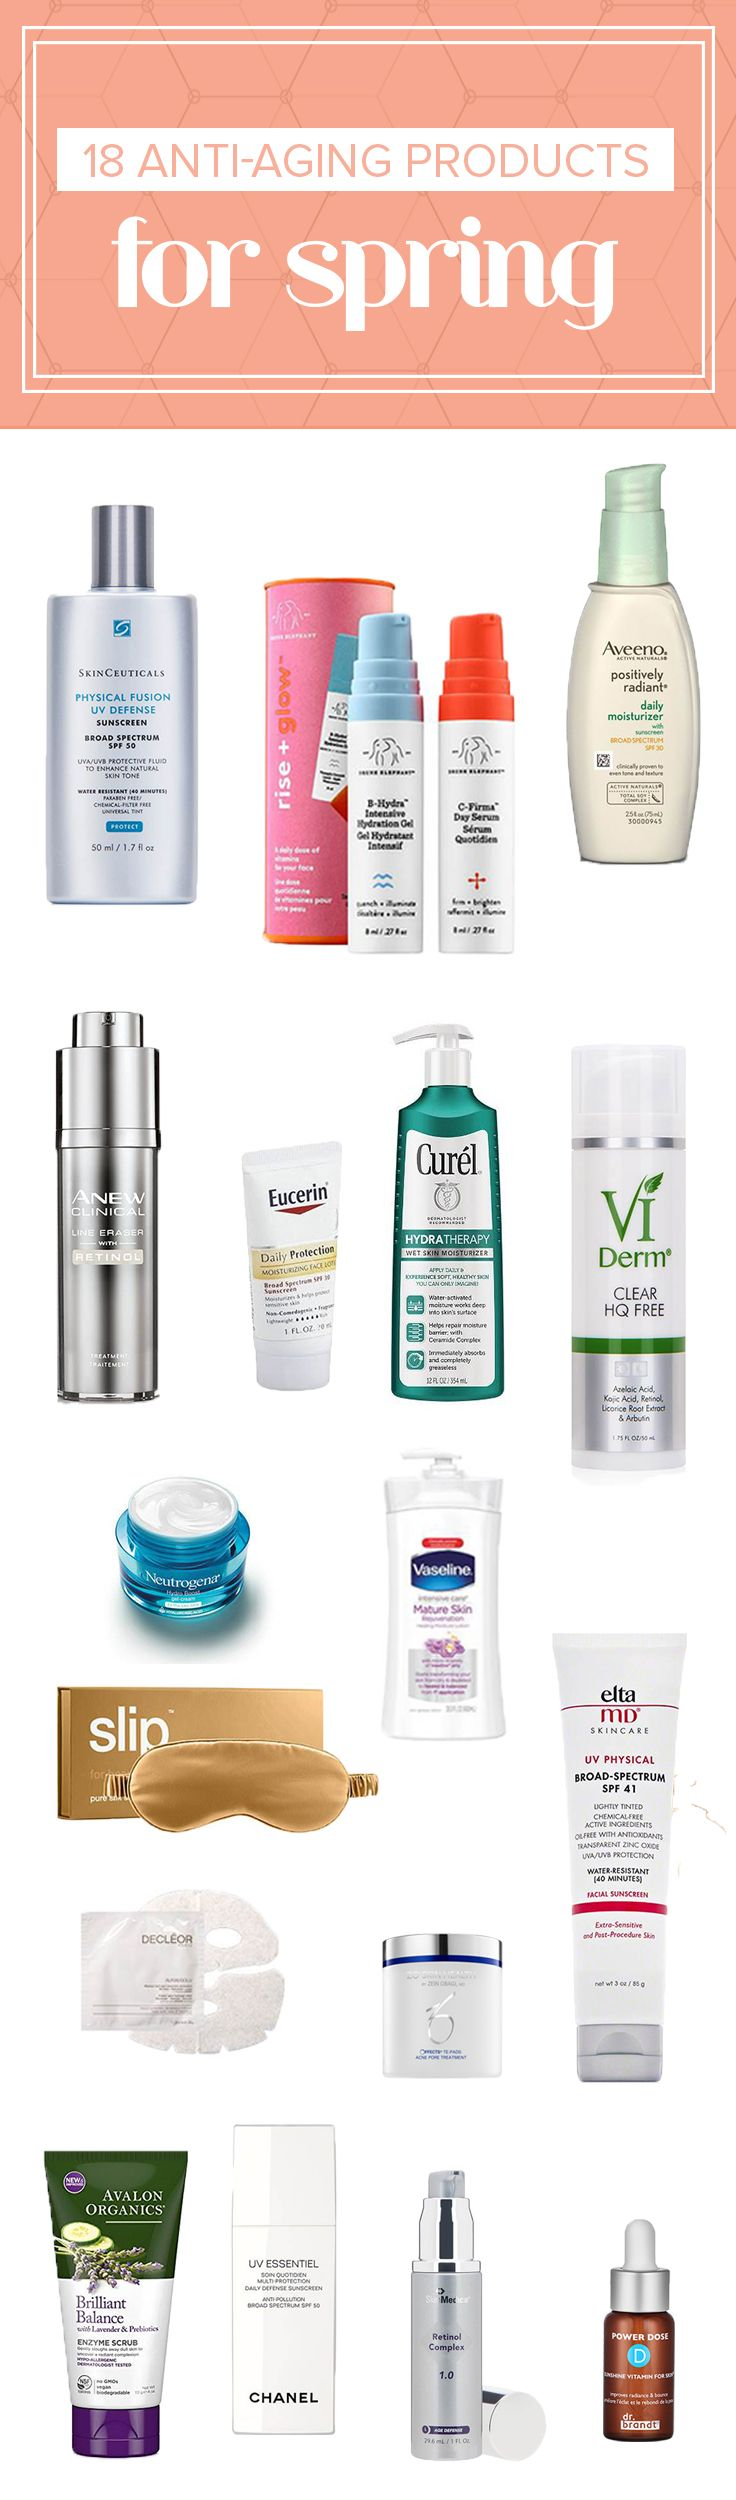 Give Your Skin A Boost With These 16 Anti Aging Products Top Skin Care Products Skin Care Best Anti Aging